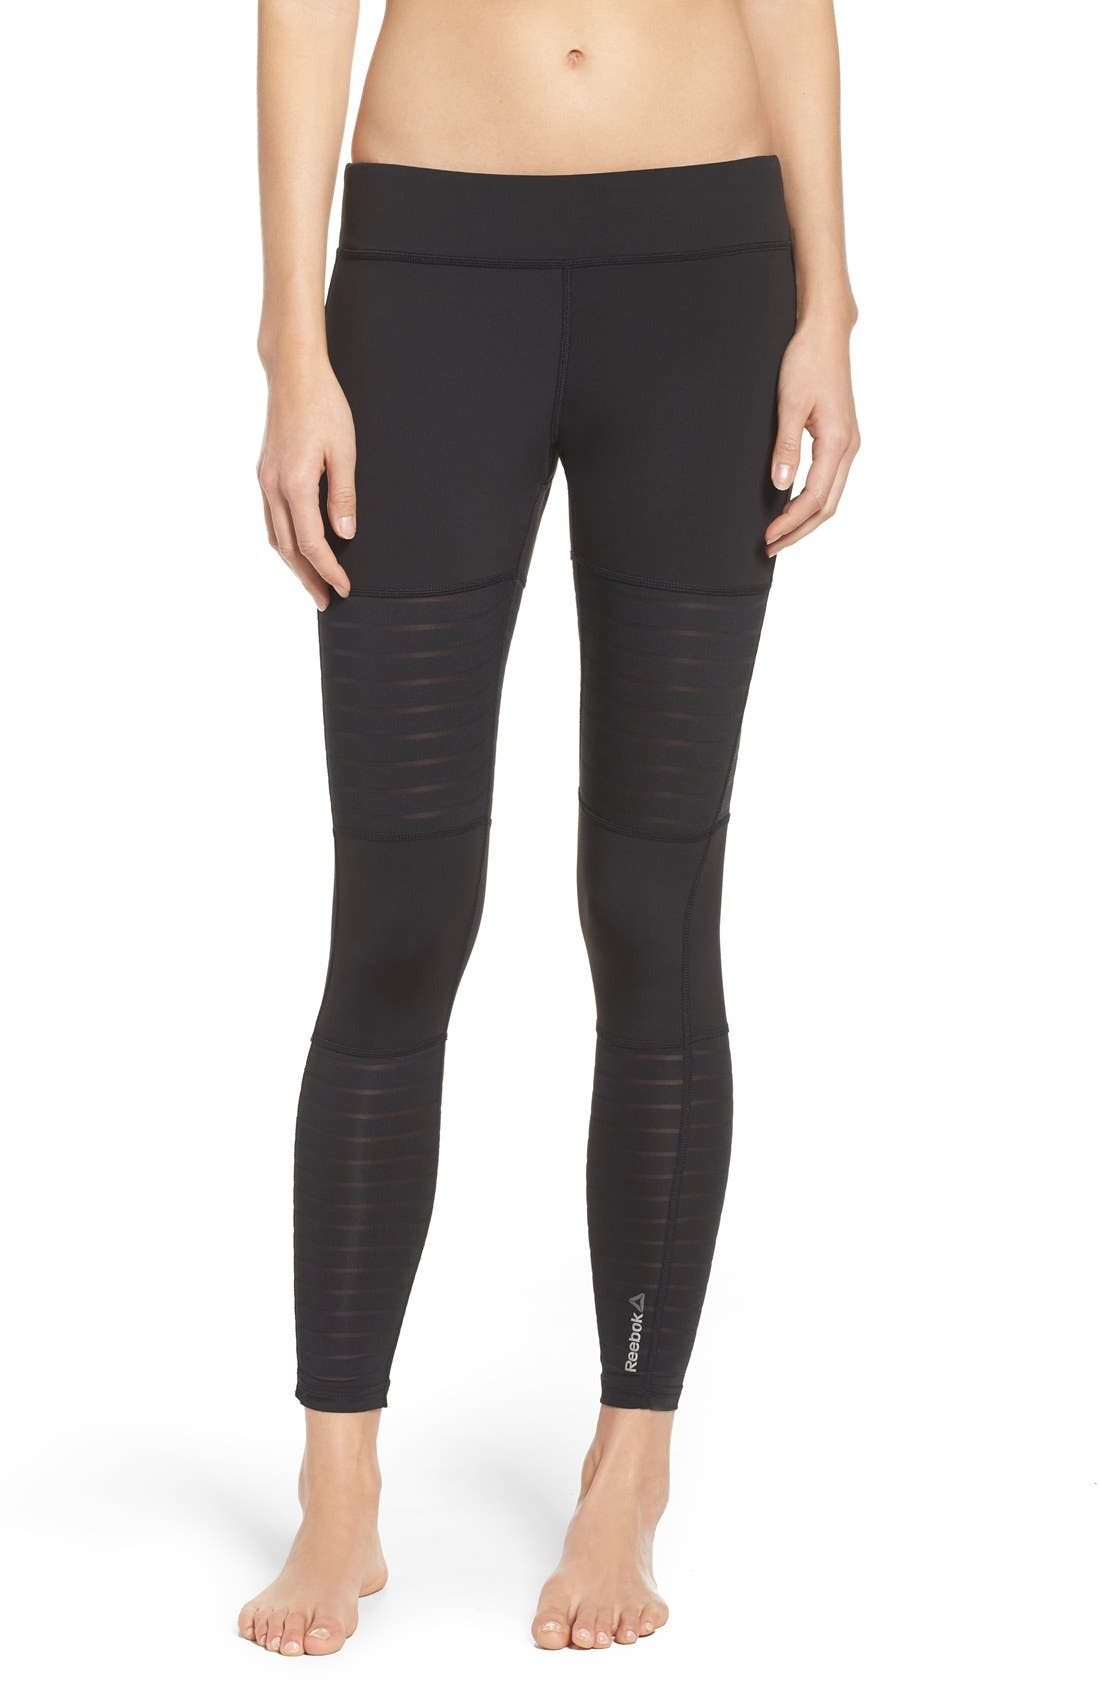 Reebok Dance Mesh Leggings